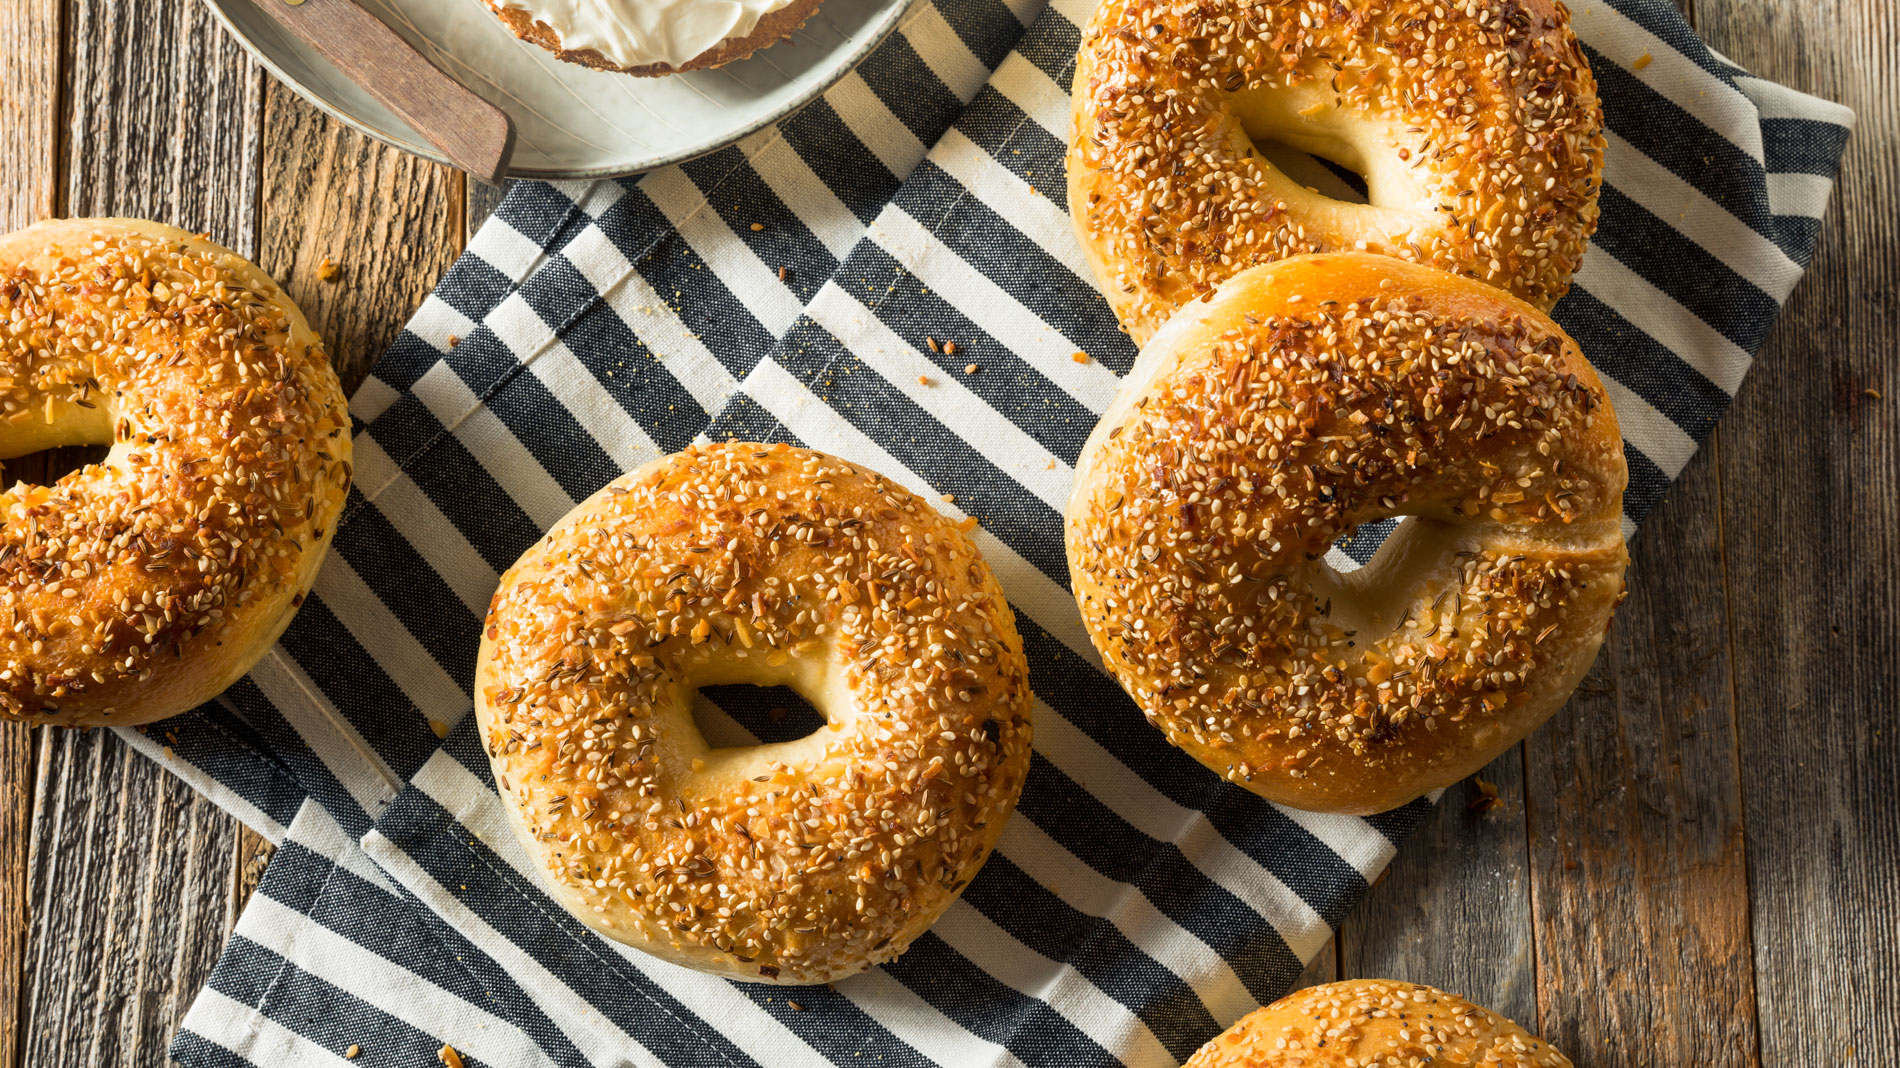 St. Louis' bagel game is in development – here's where to find them